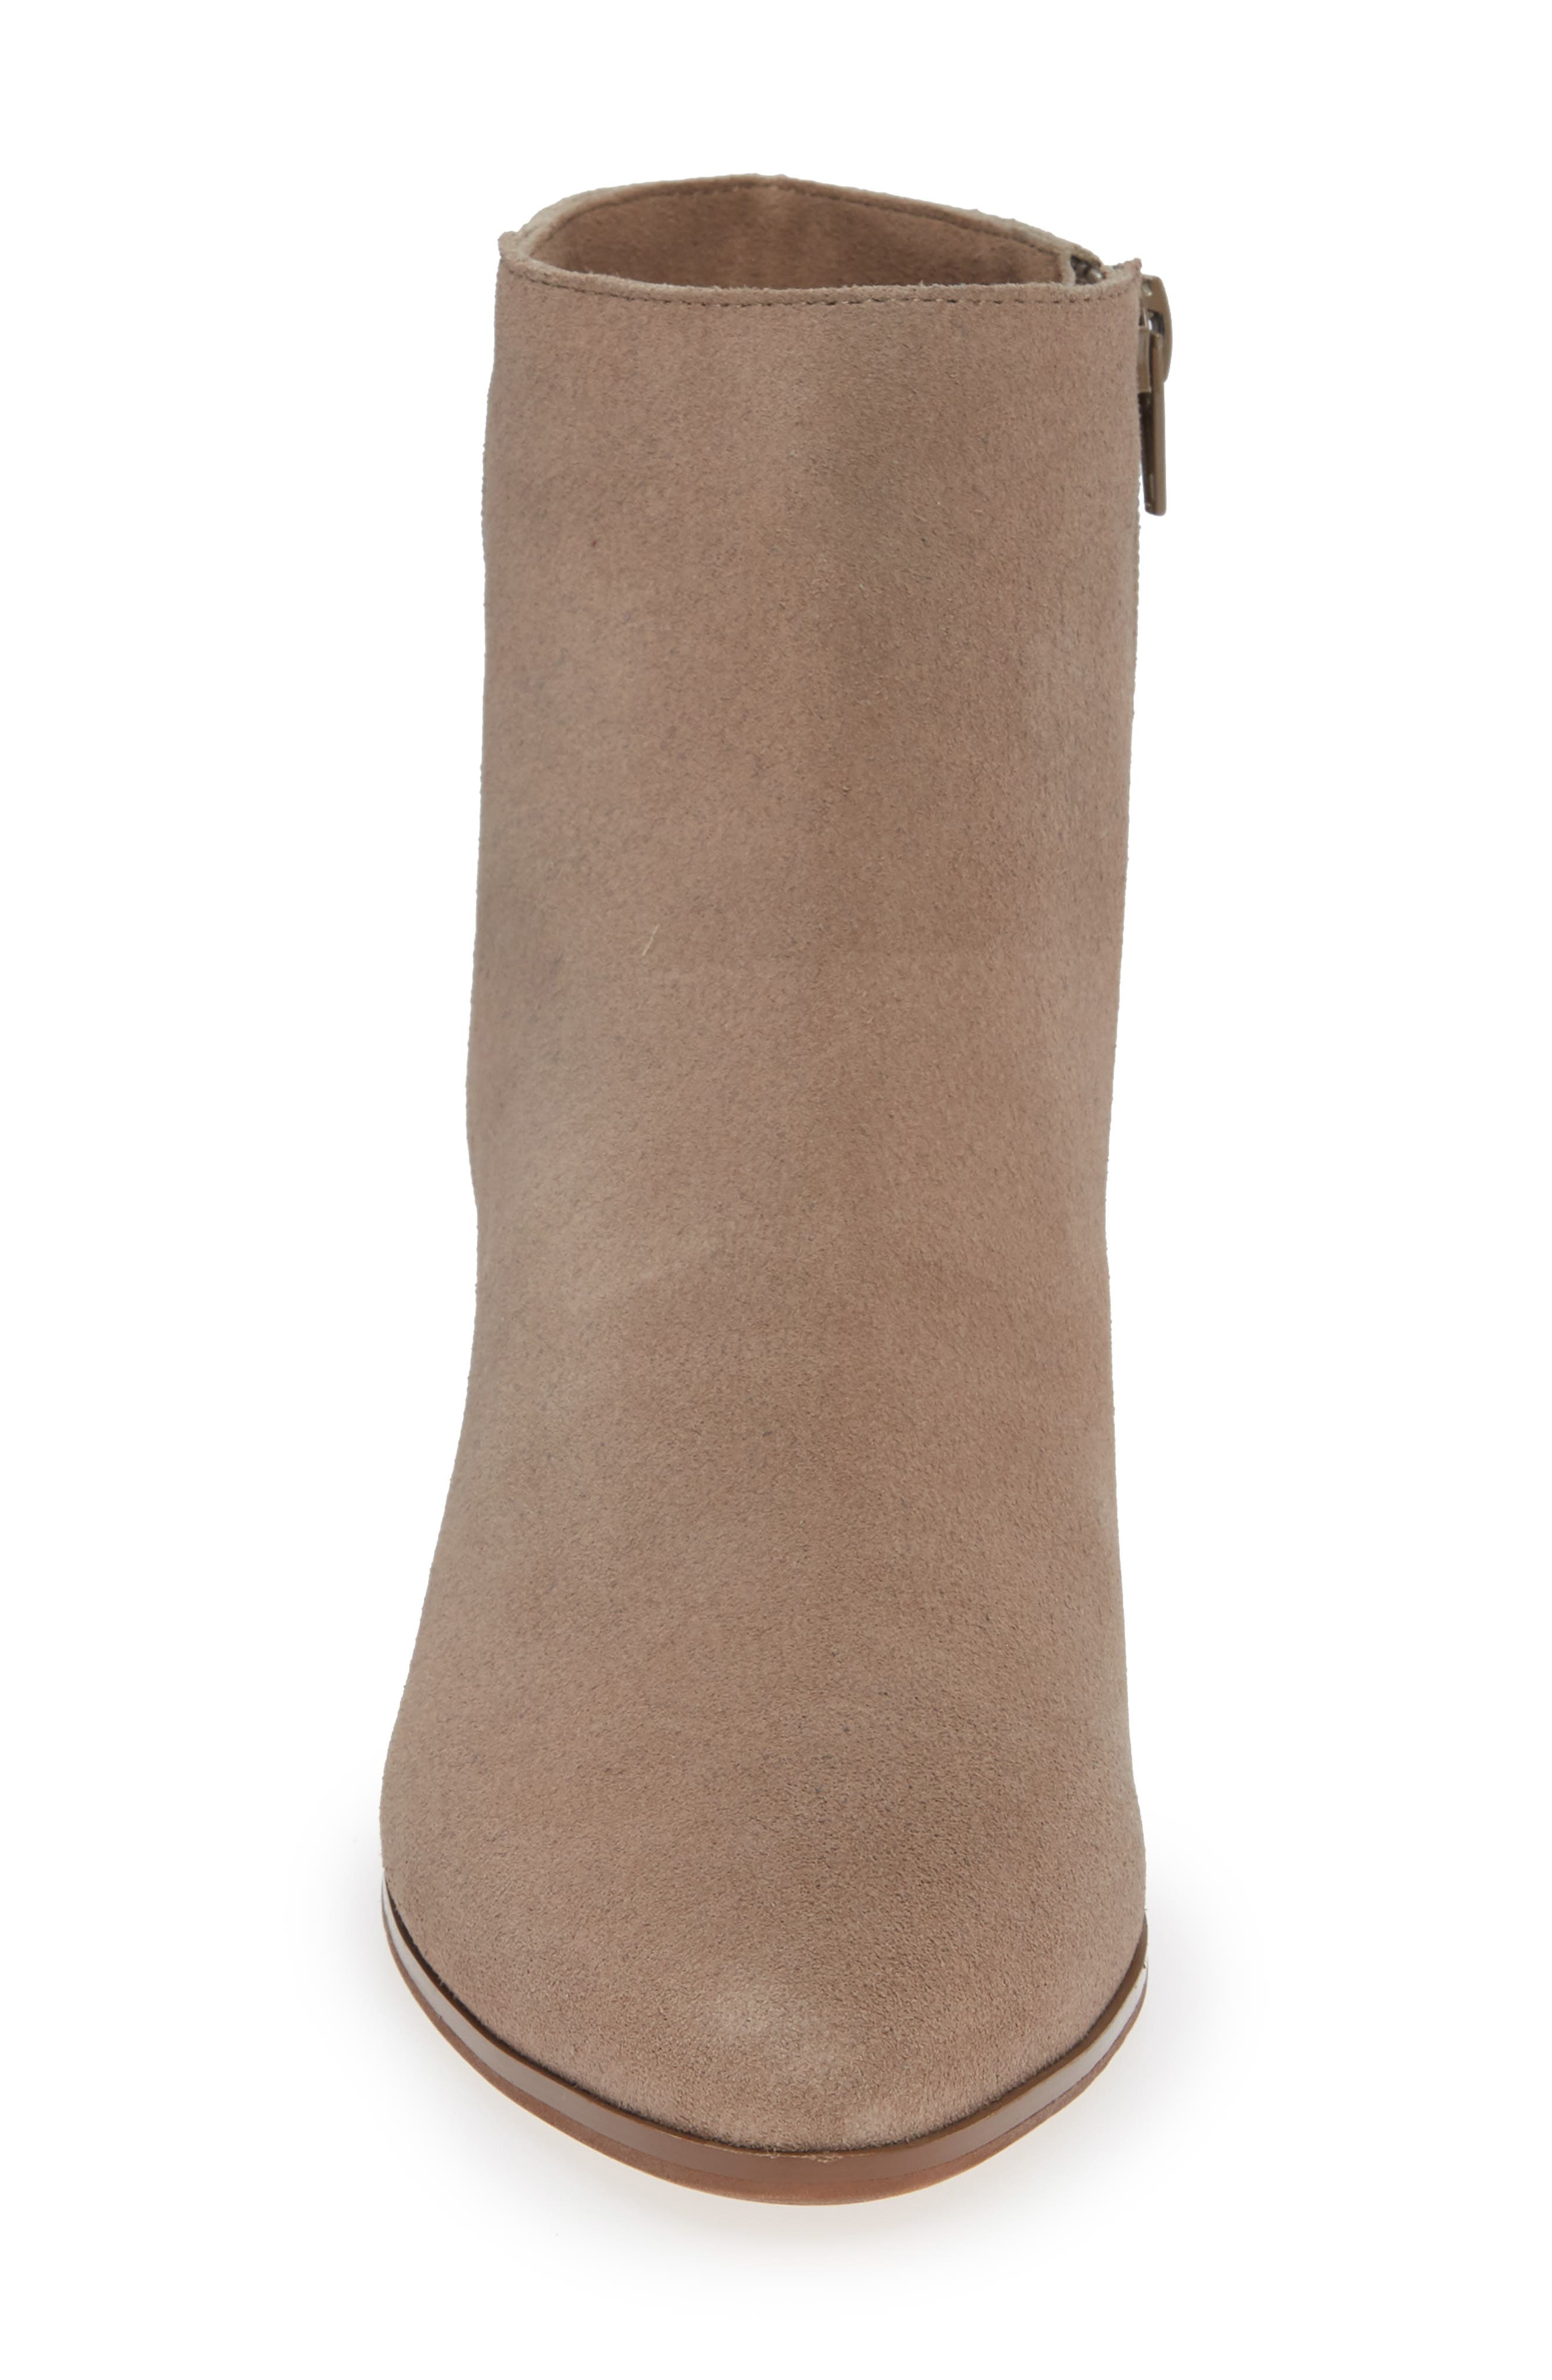 SOLE SOCIETY, Rhilynn Bootie, Alternate thumbnail 4, color, FALL TAUPE SUEDE